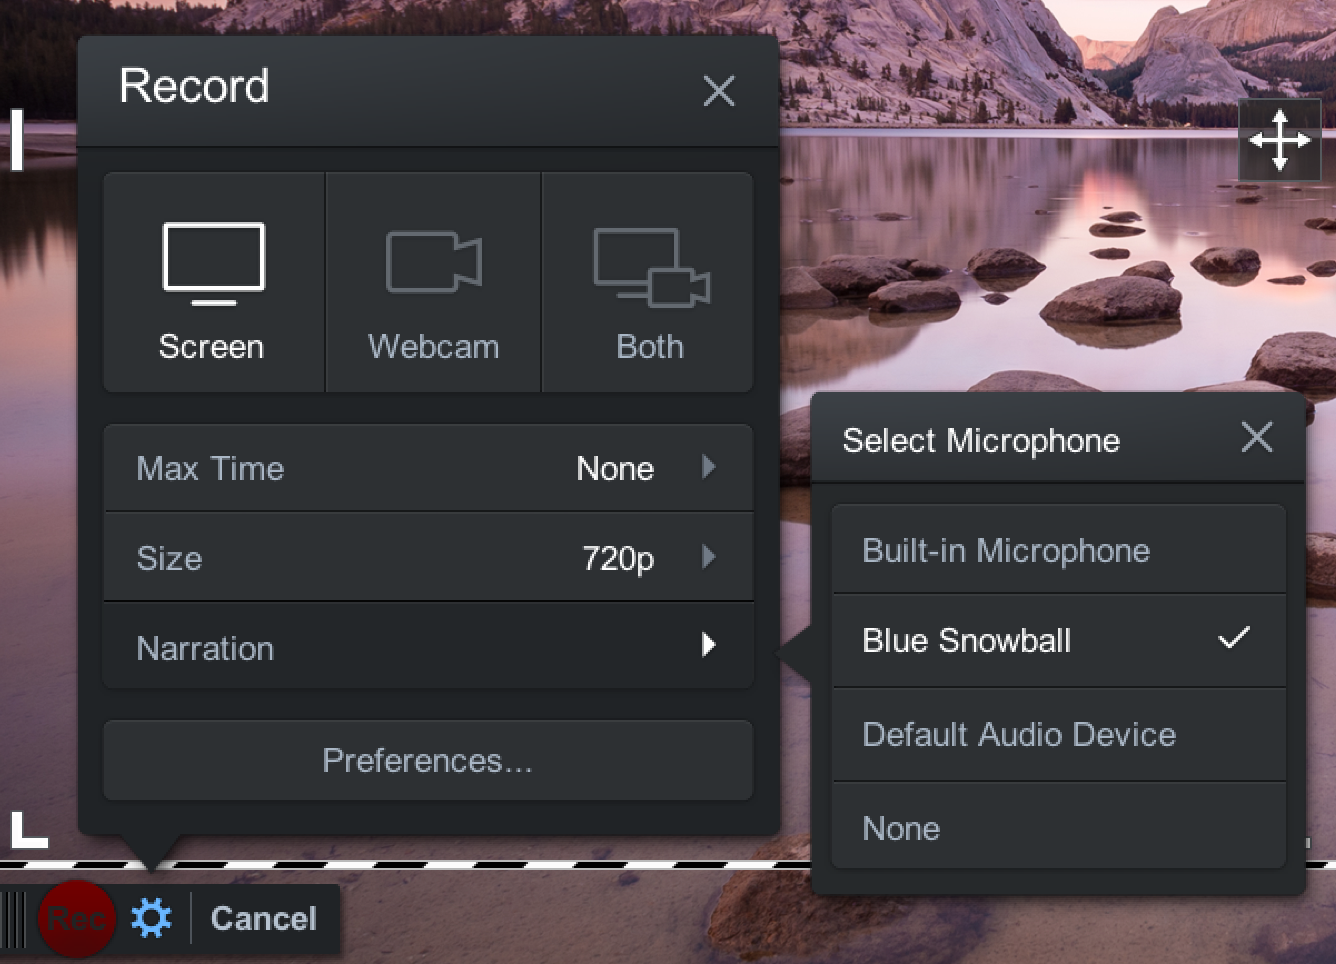 Screencast audio options